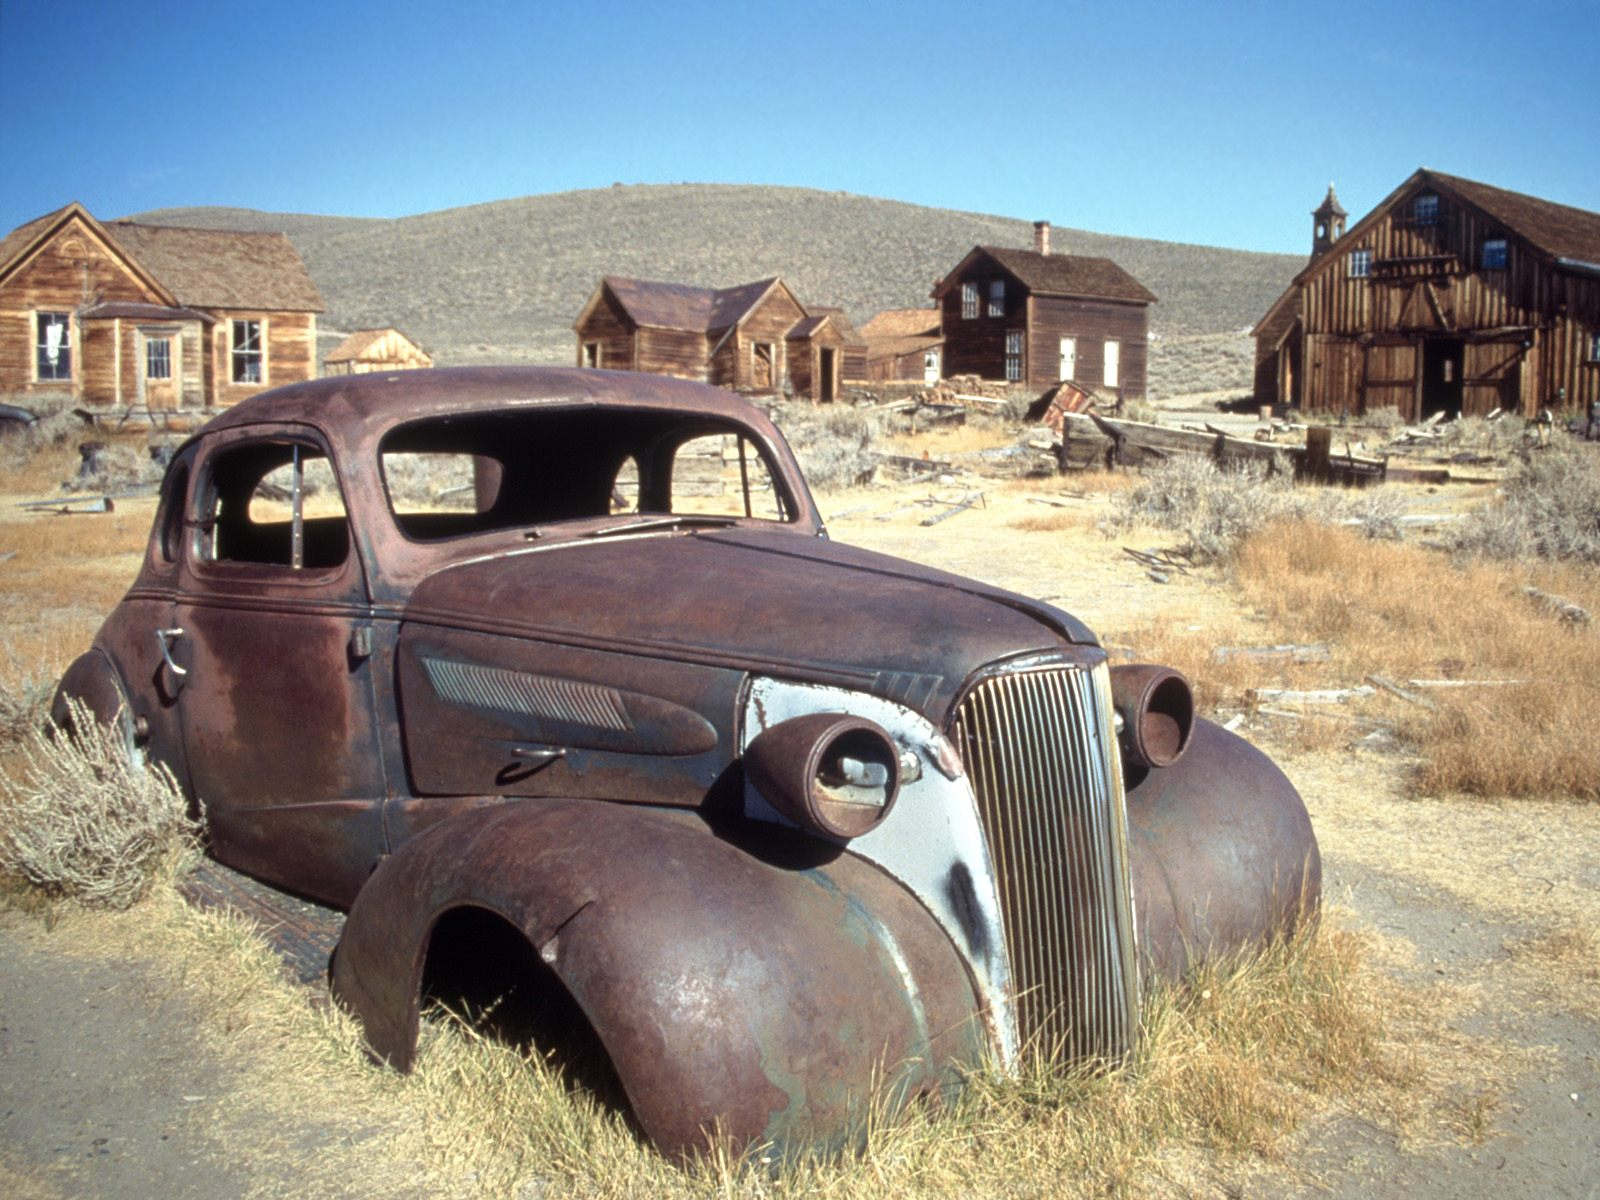 Time Goes By, Bodie Ghost Town, California - 1600x1200 - ID 584023